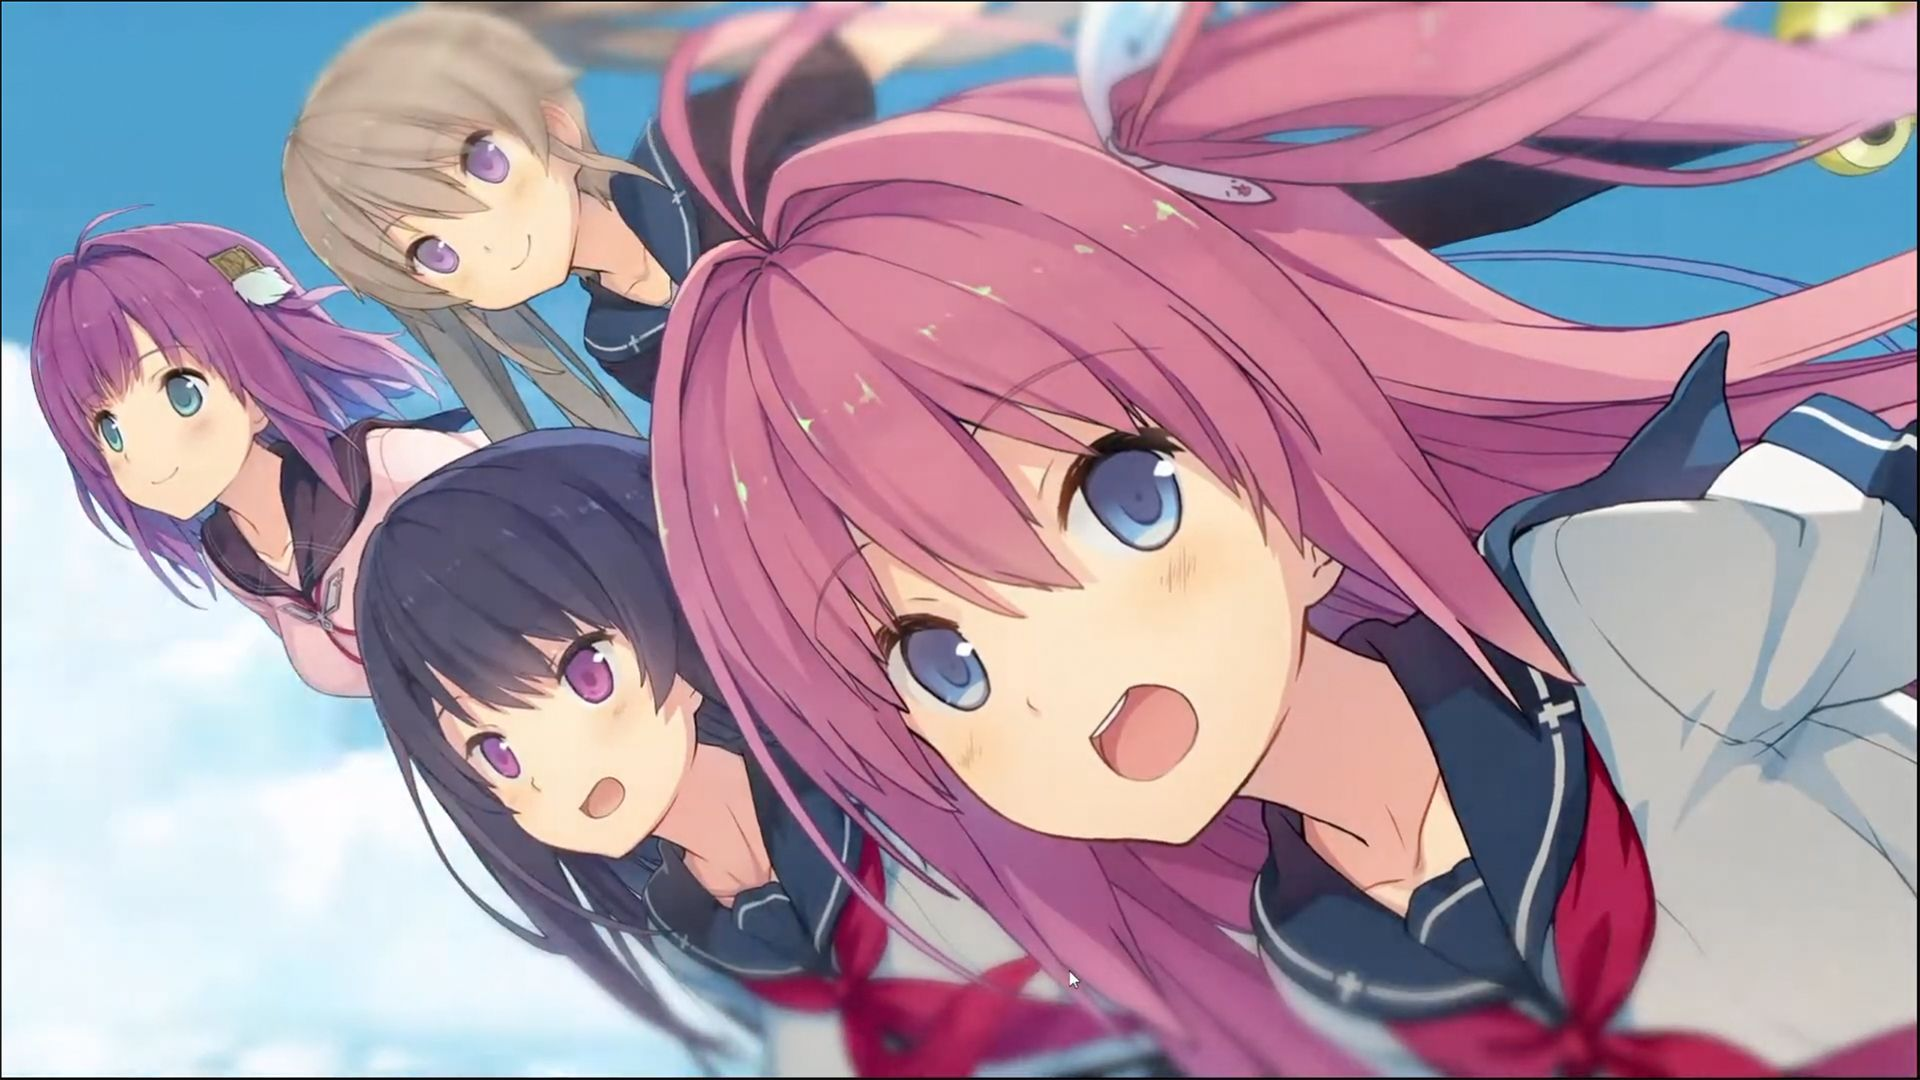 Pin by GAME ON! (King of Games) on Aokana Four Rhythms